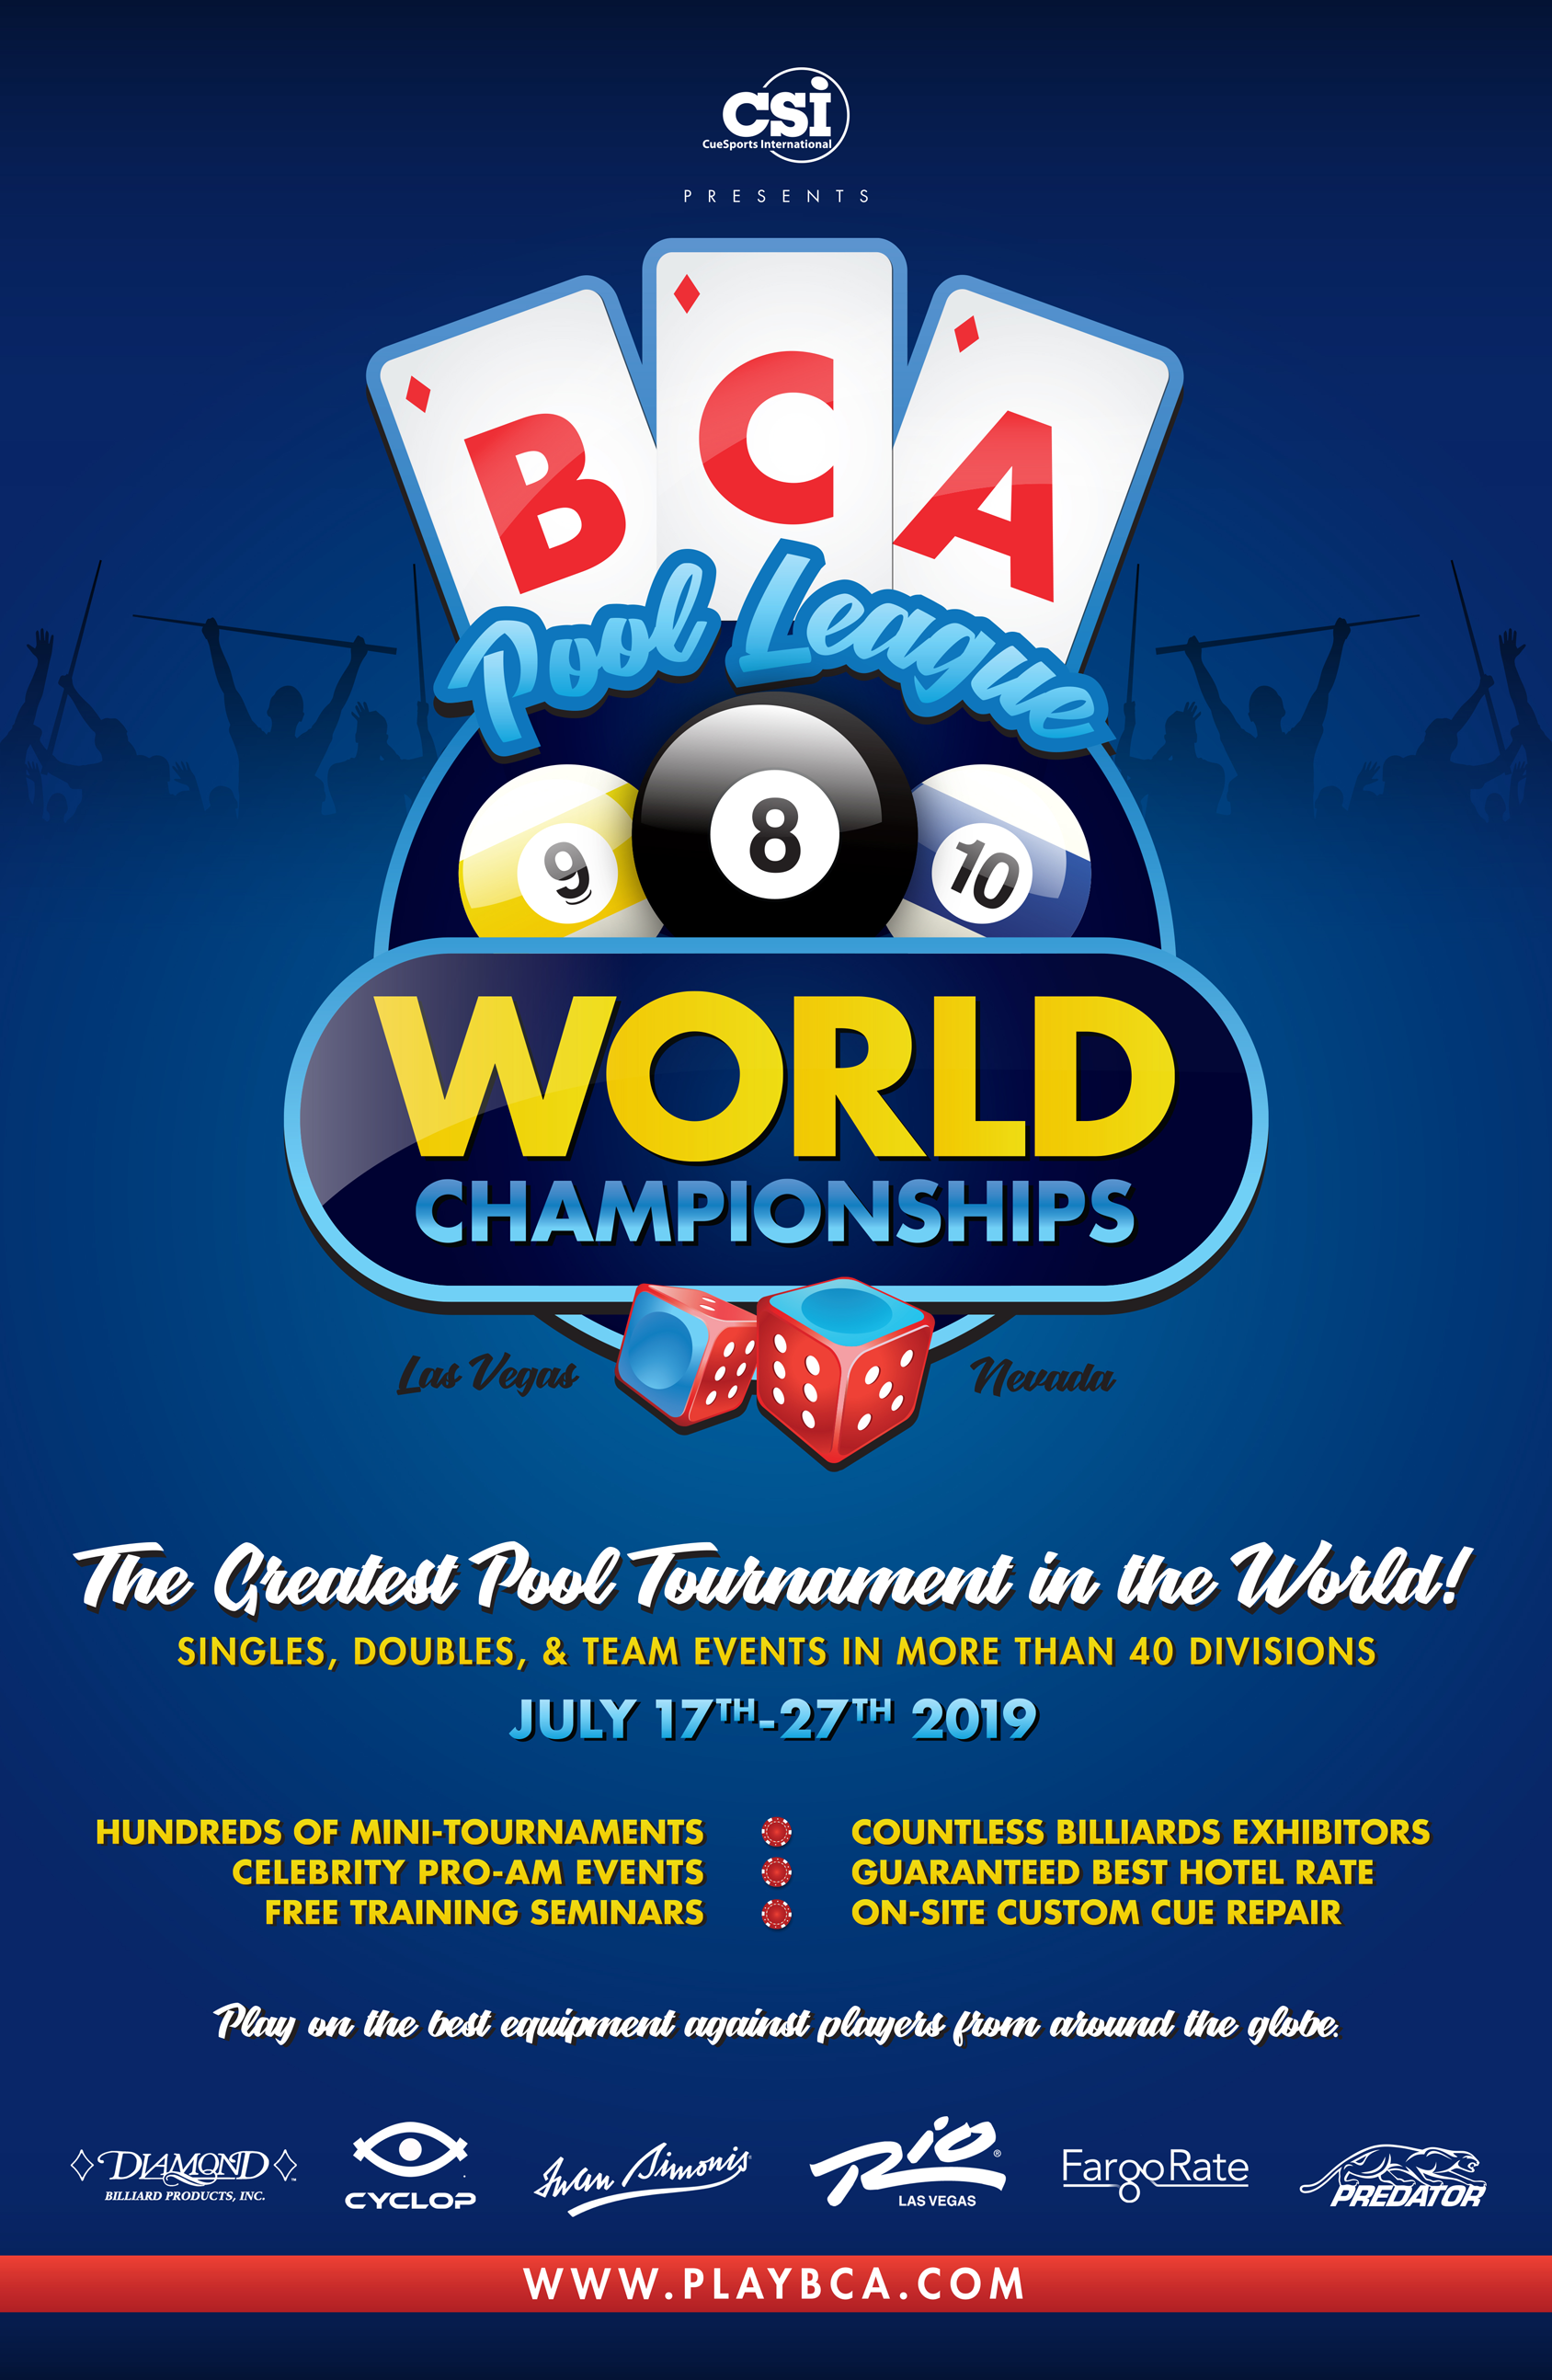 2019 BCAPL World Championships - CueSports International (CSI)